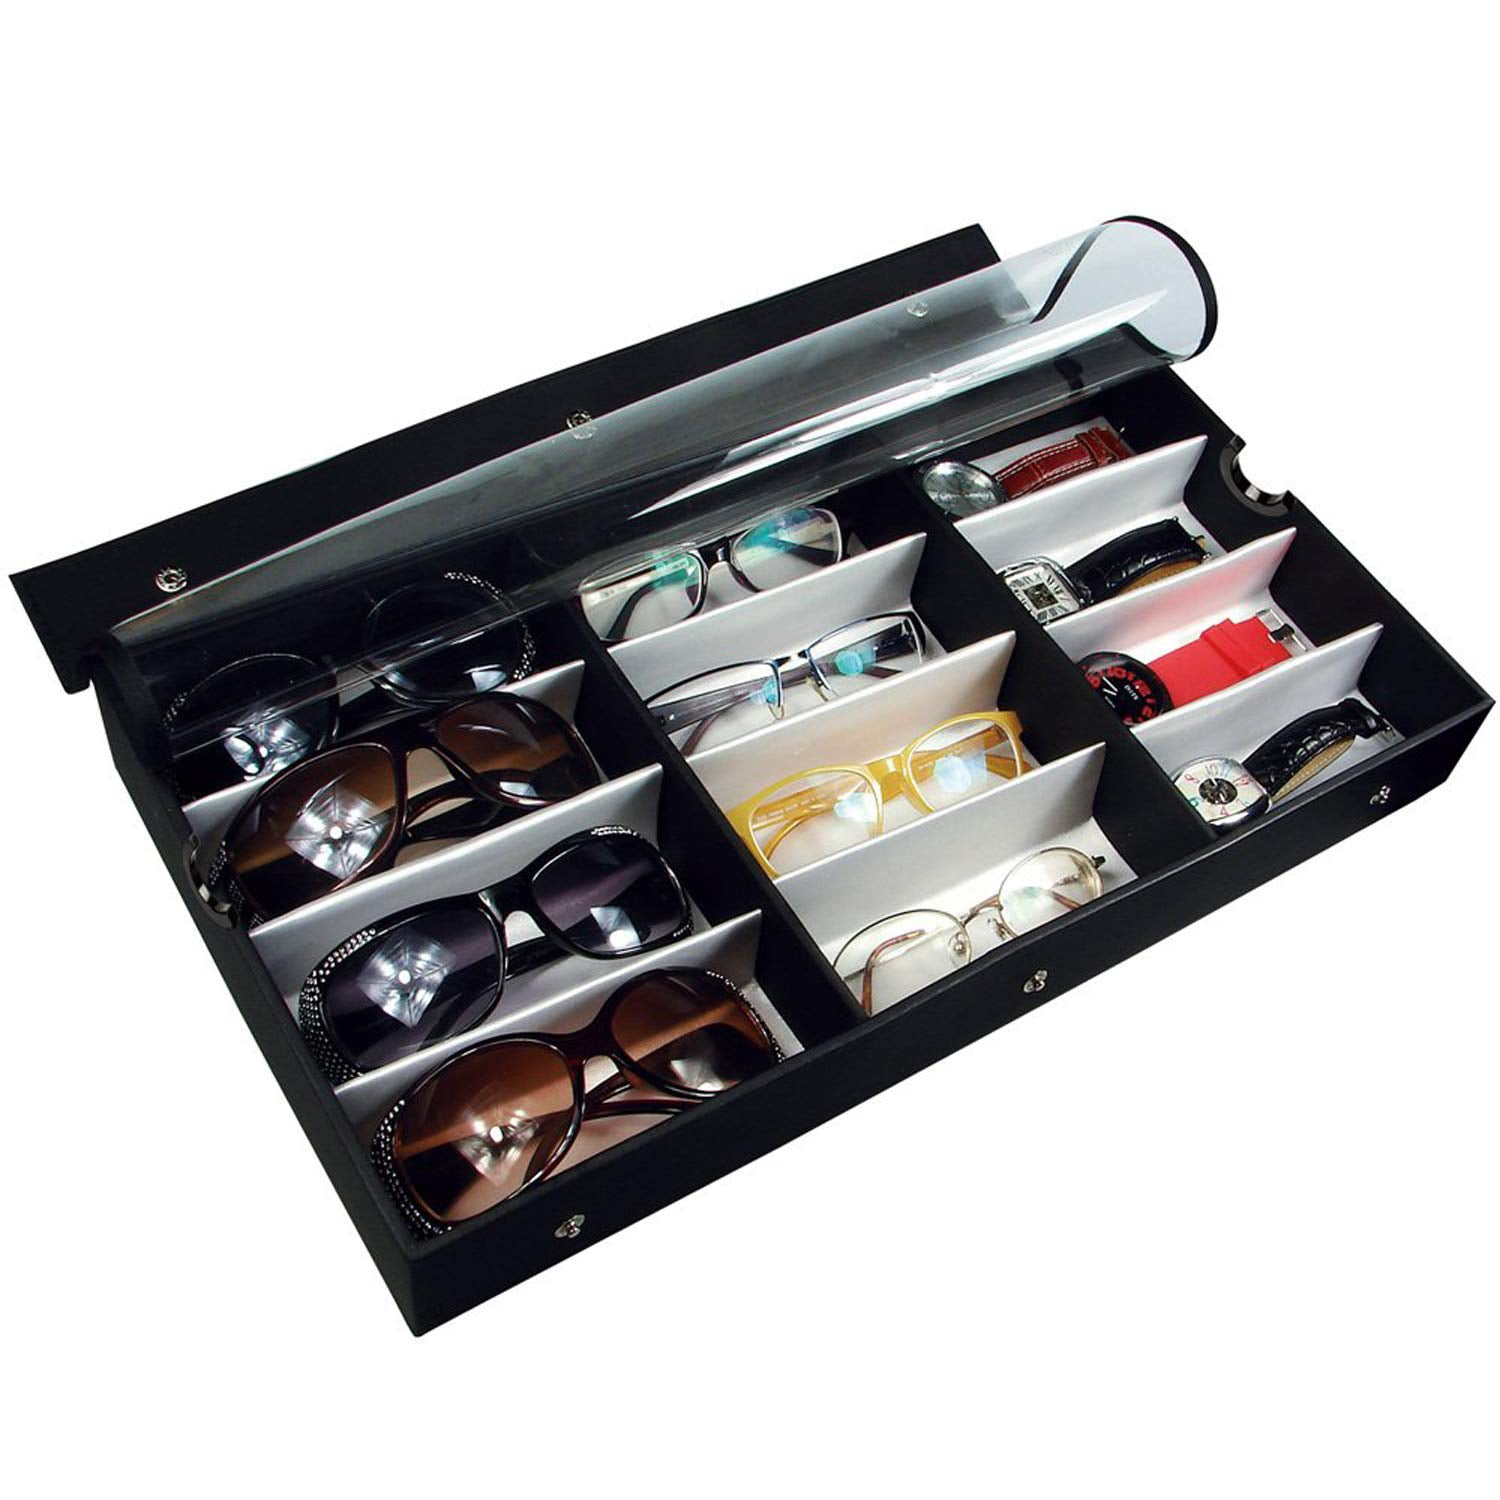 [Eyewear Storage and Display] - Apex International